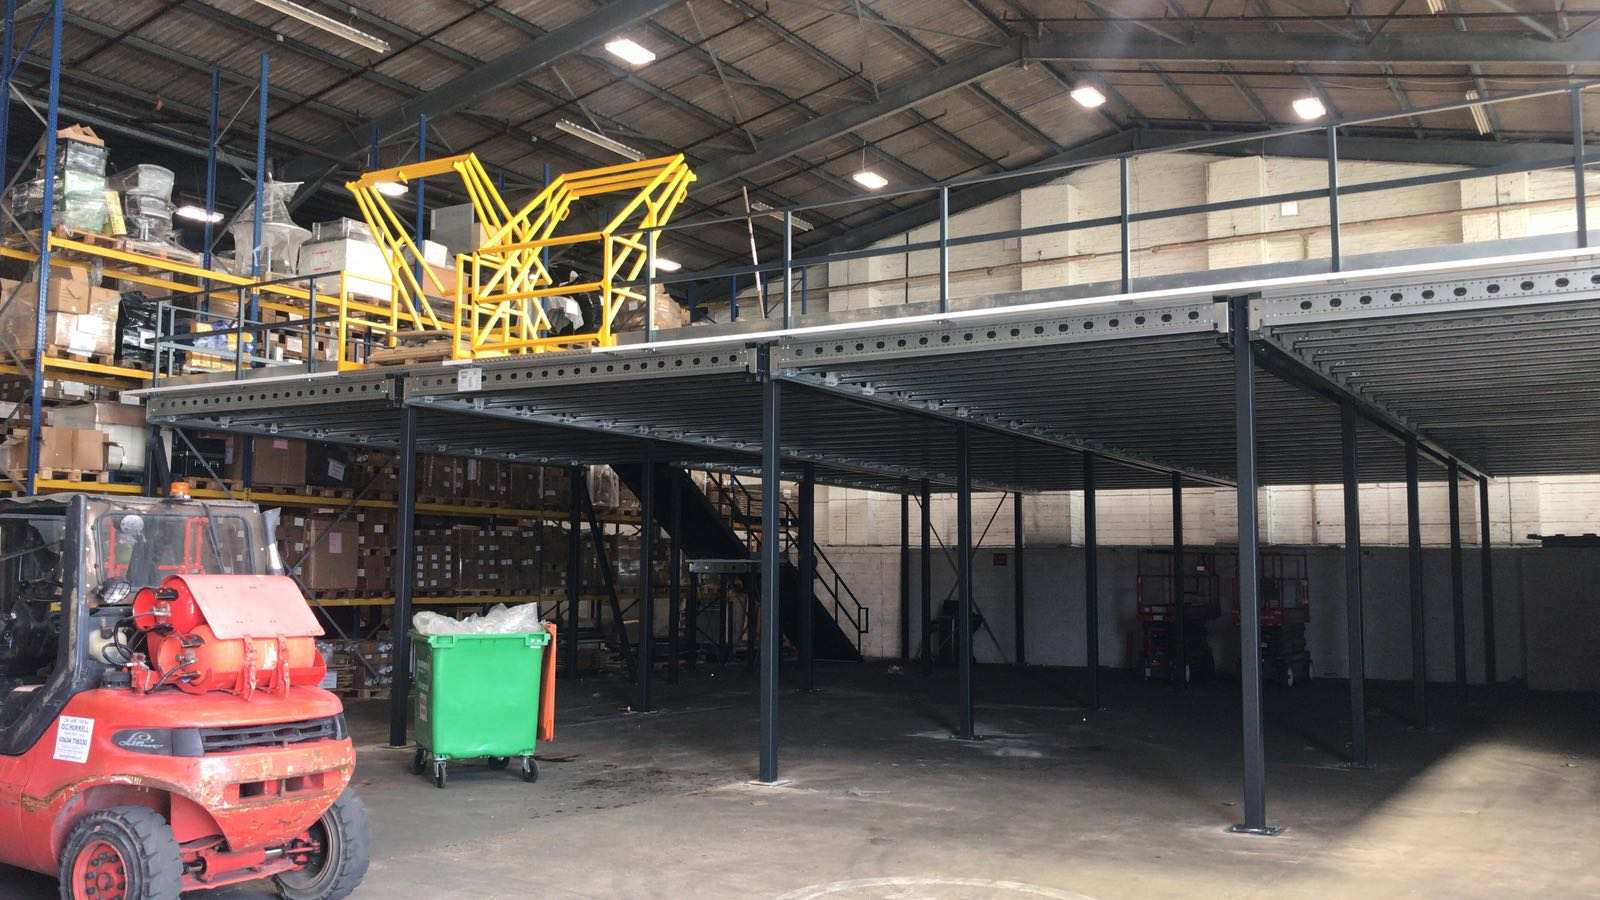 A mezzanine floor and safety | John Scott Works